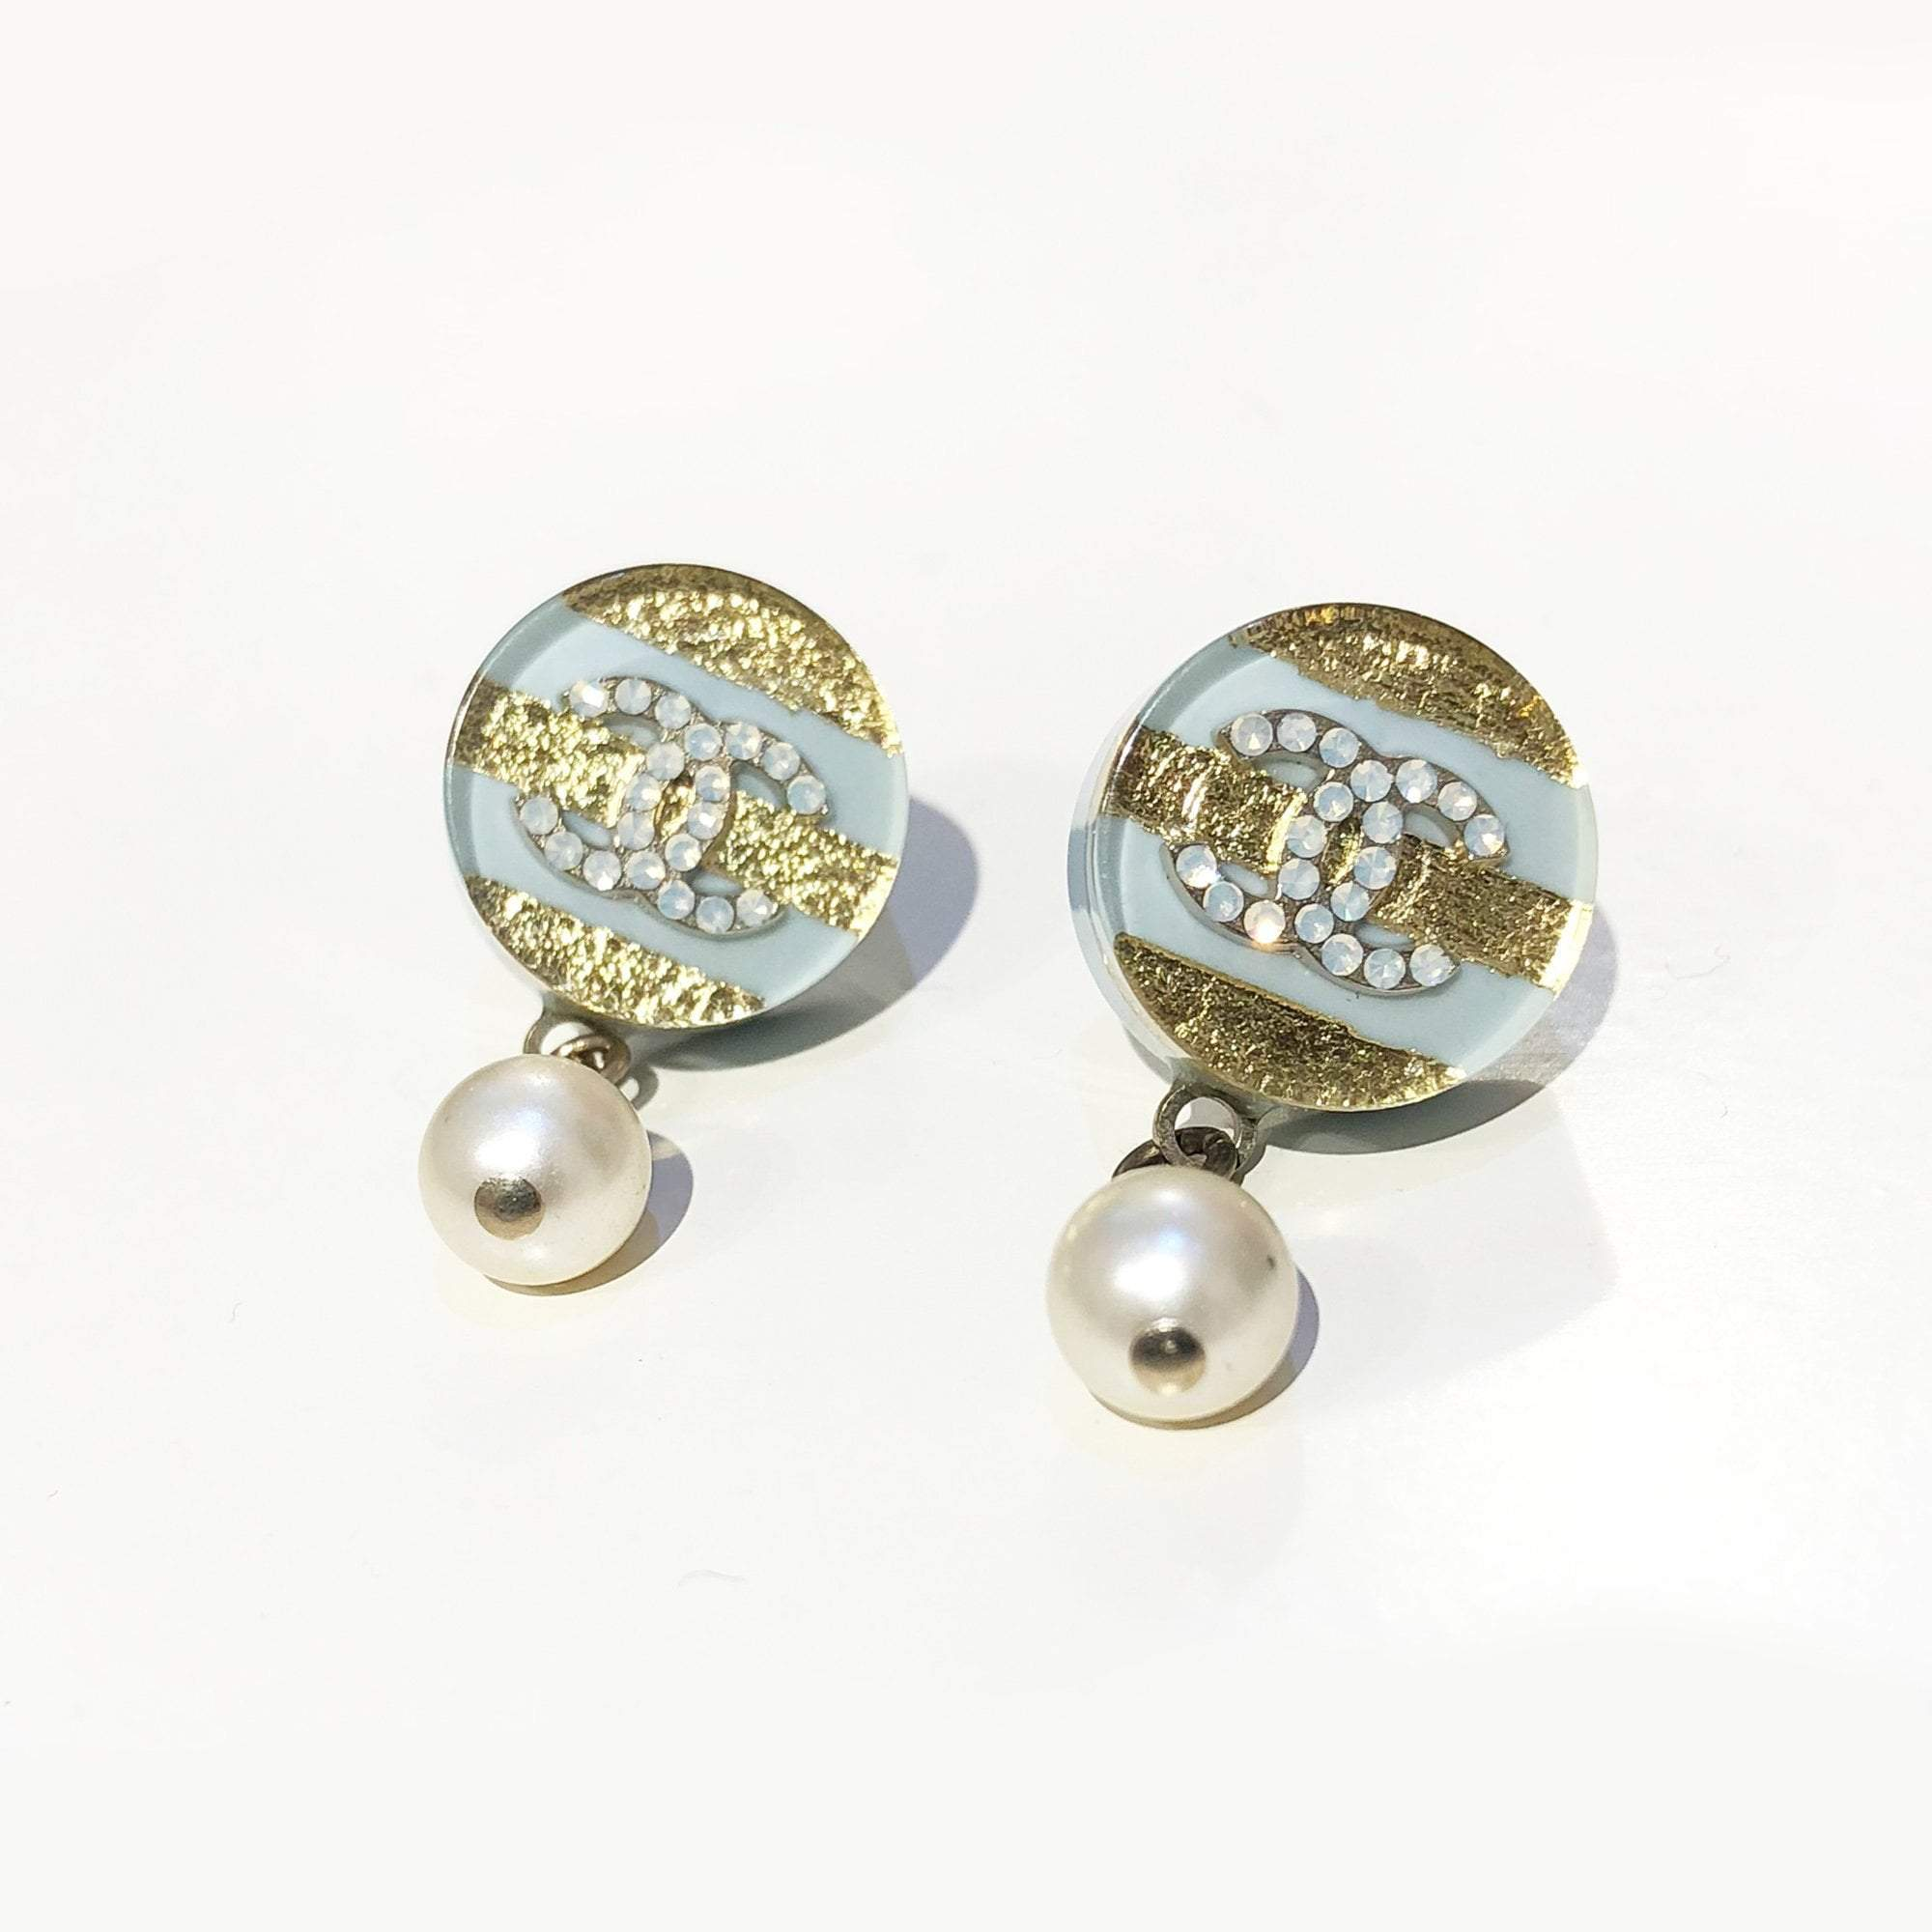 Chanel Light Blue & Gold Round Pearl Drop Earrings (no earring back)